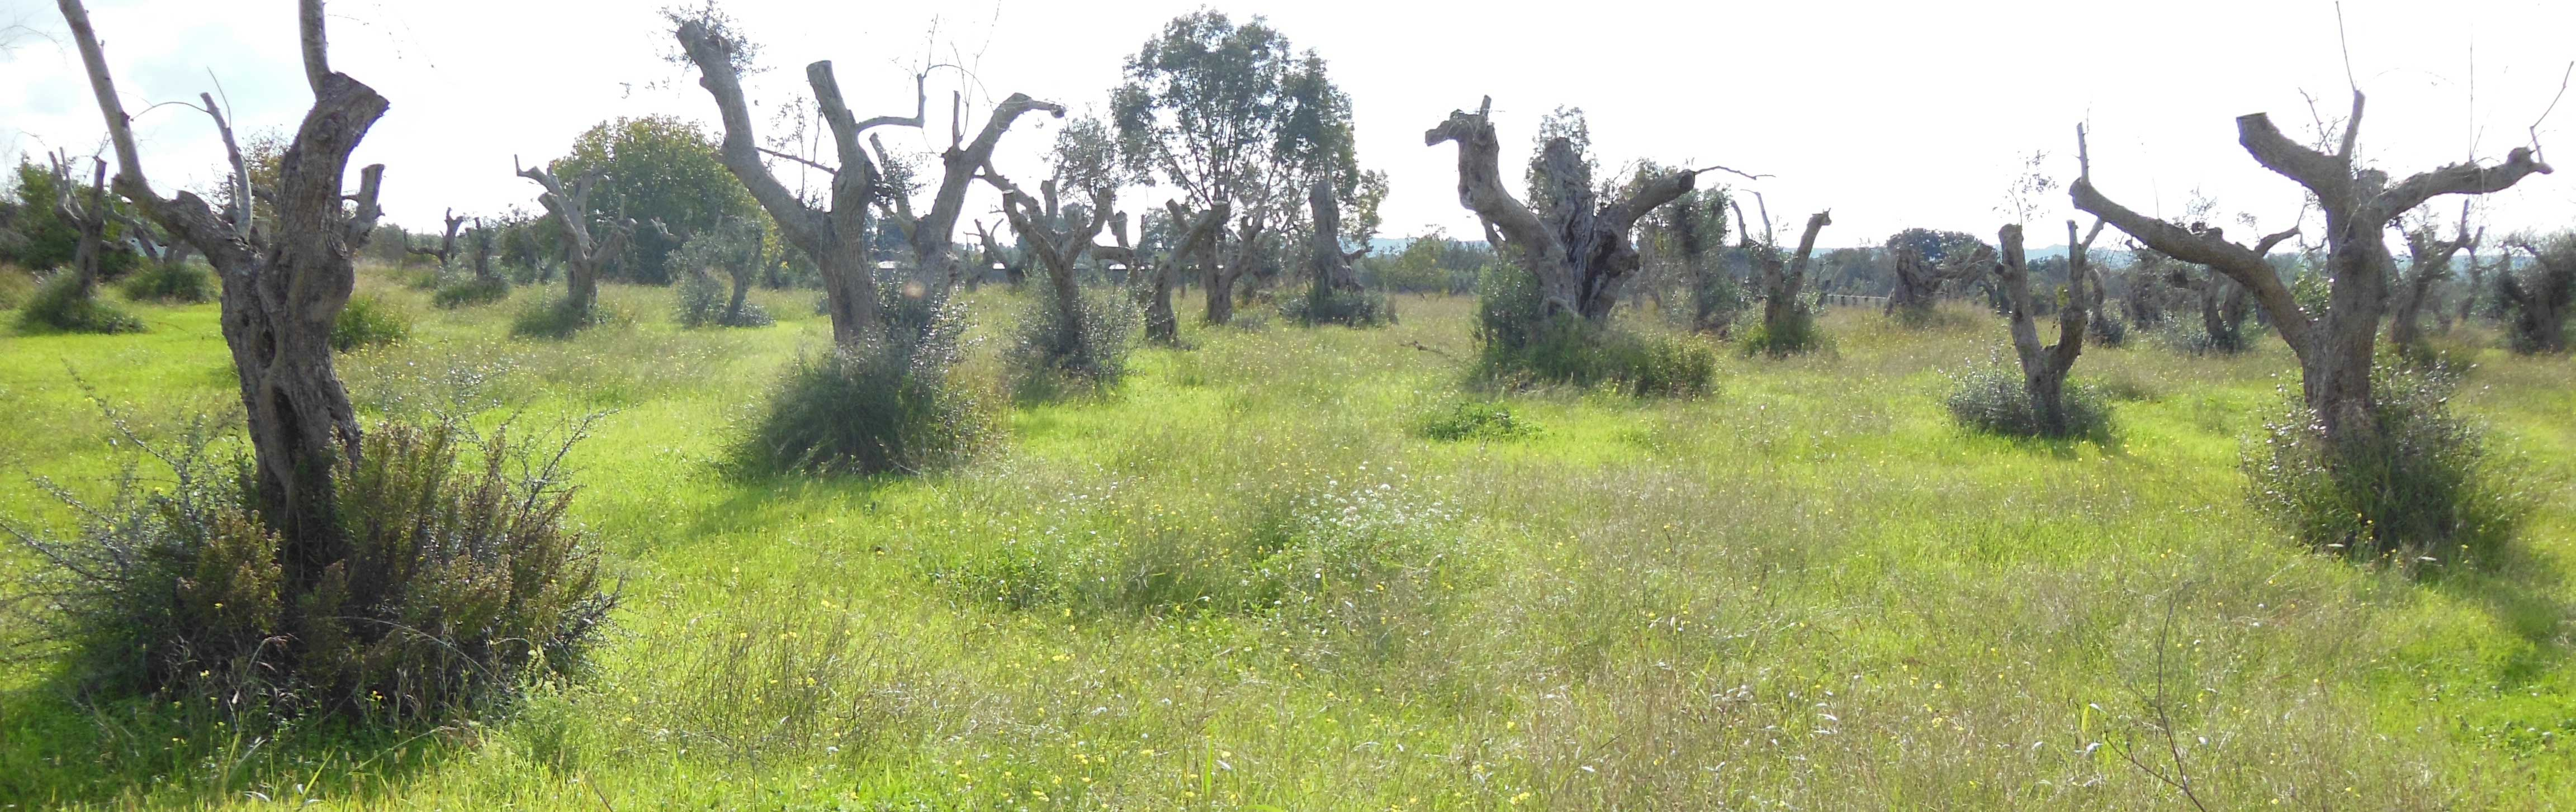 Olive trees in Apulia, Italy, after failed attempts to remove X. fastidiosa by pruning symptomatic branches.